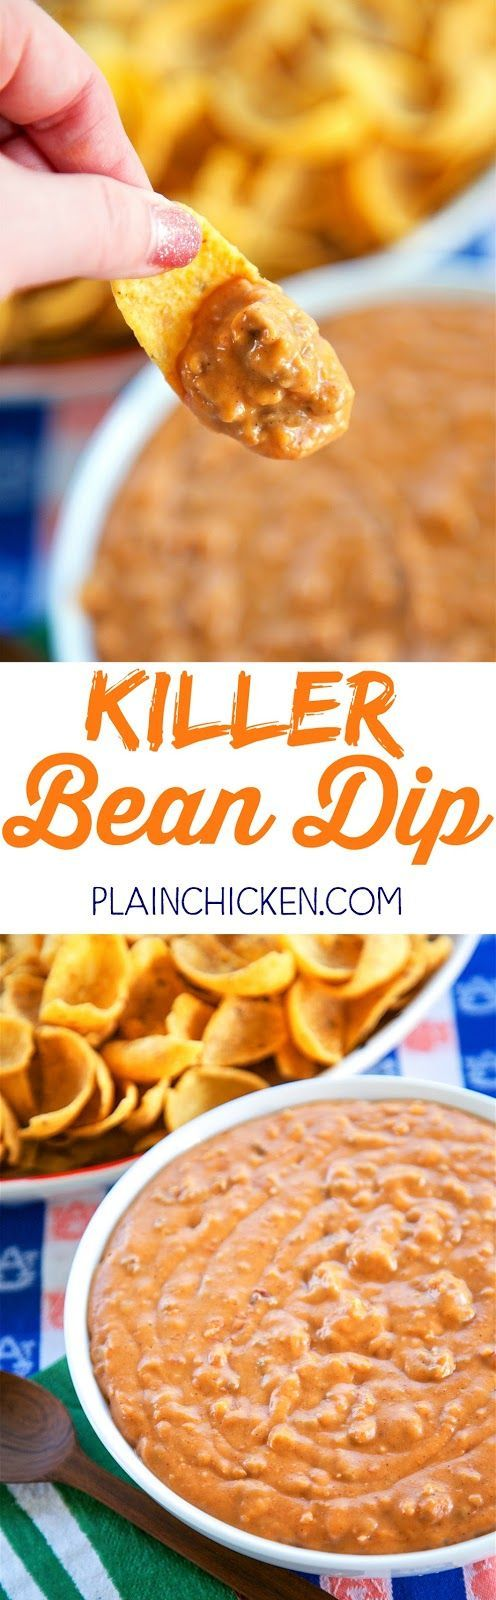 KKiller Bean Dip - only 5 ingredients! Refried beans, hamburger, taco seasoning, salsa and Velveeta. Can make on the stove or in the slow cooker. This stuff is CRAZY good! Great for tailgating!! I could make a meal out of this dip. Great Mexican dip!!